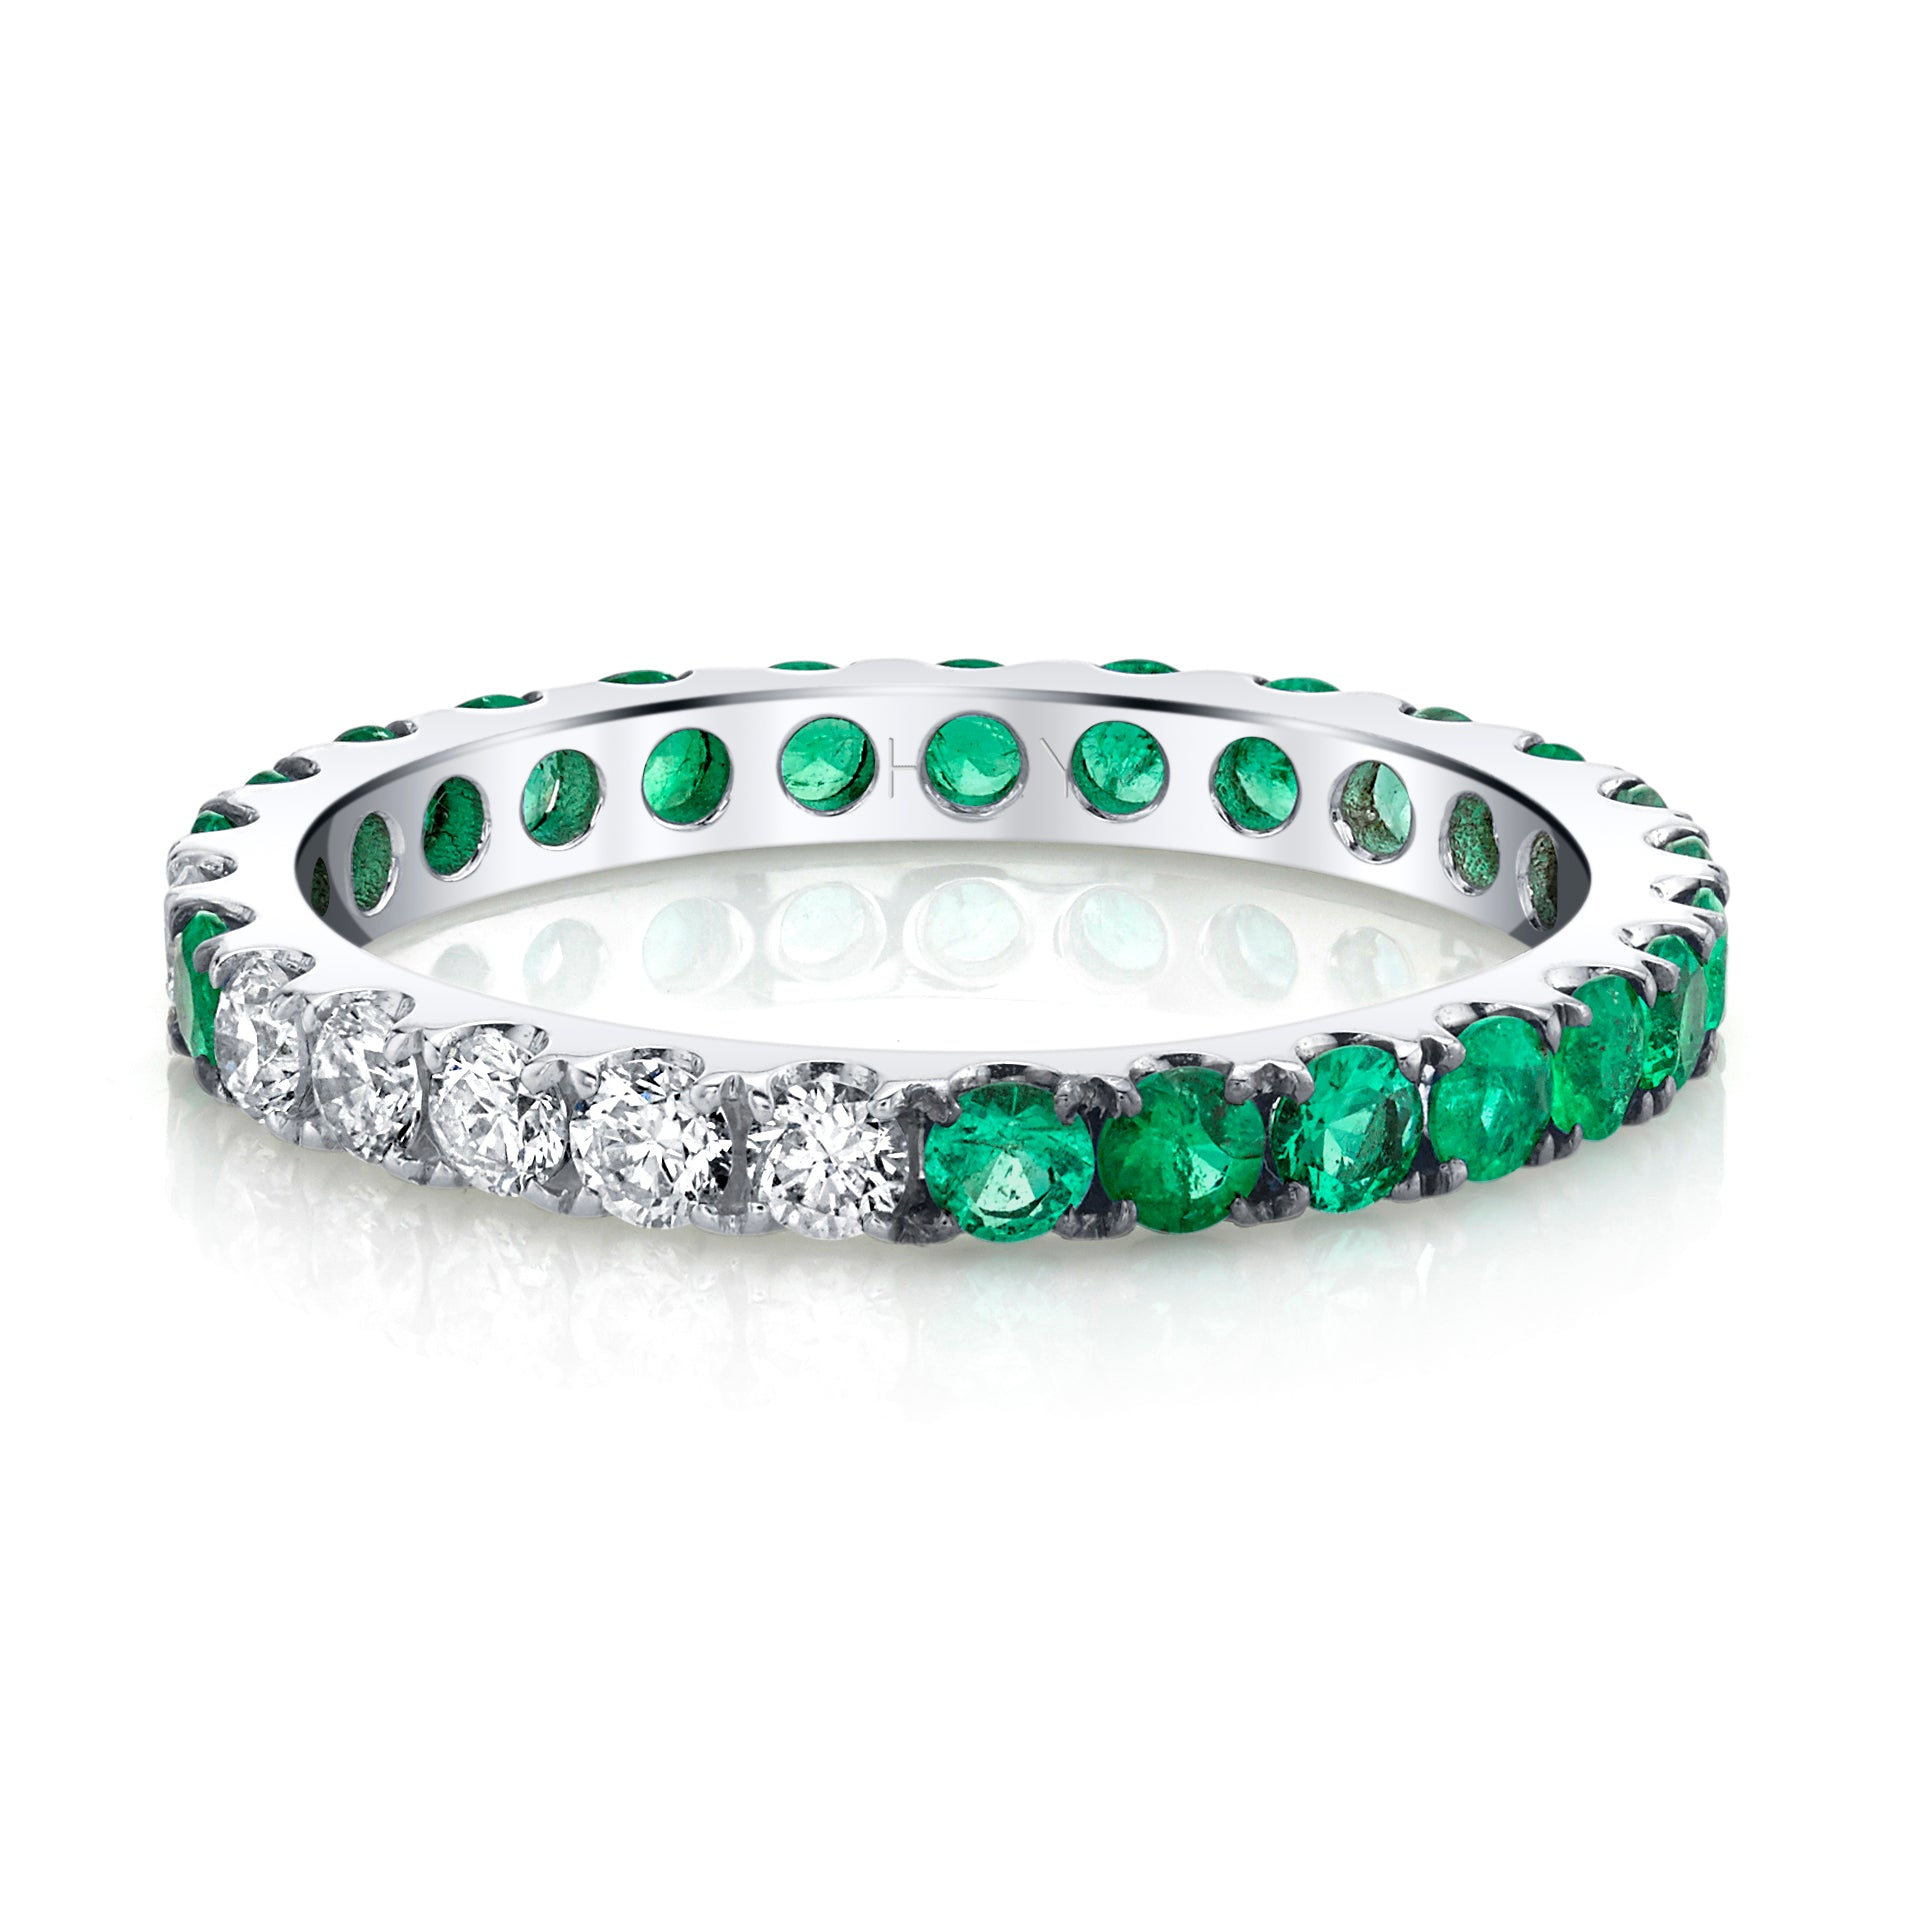 READY TO SHIP EMERALD OMBRE ETERNITY BAND